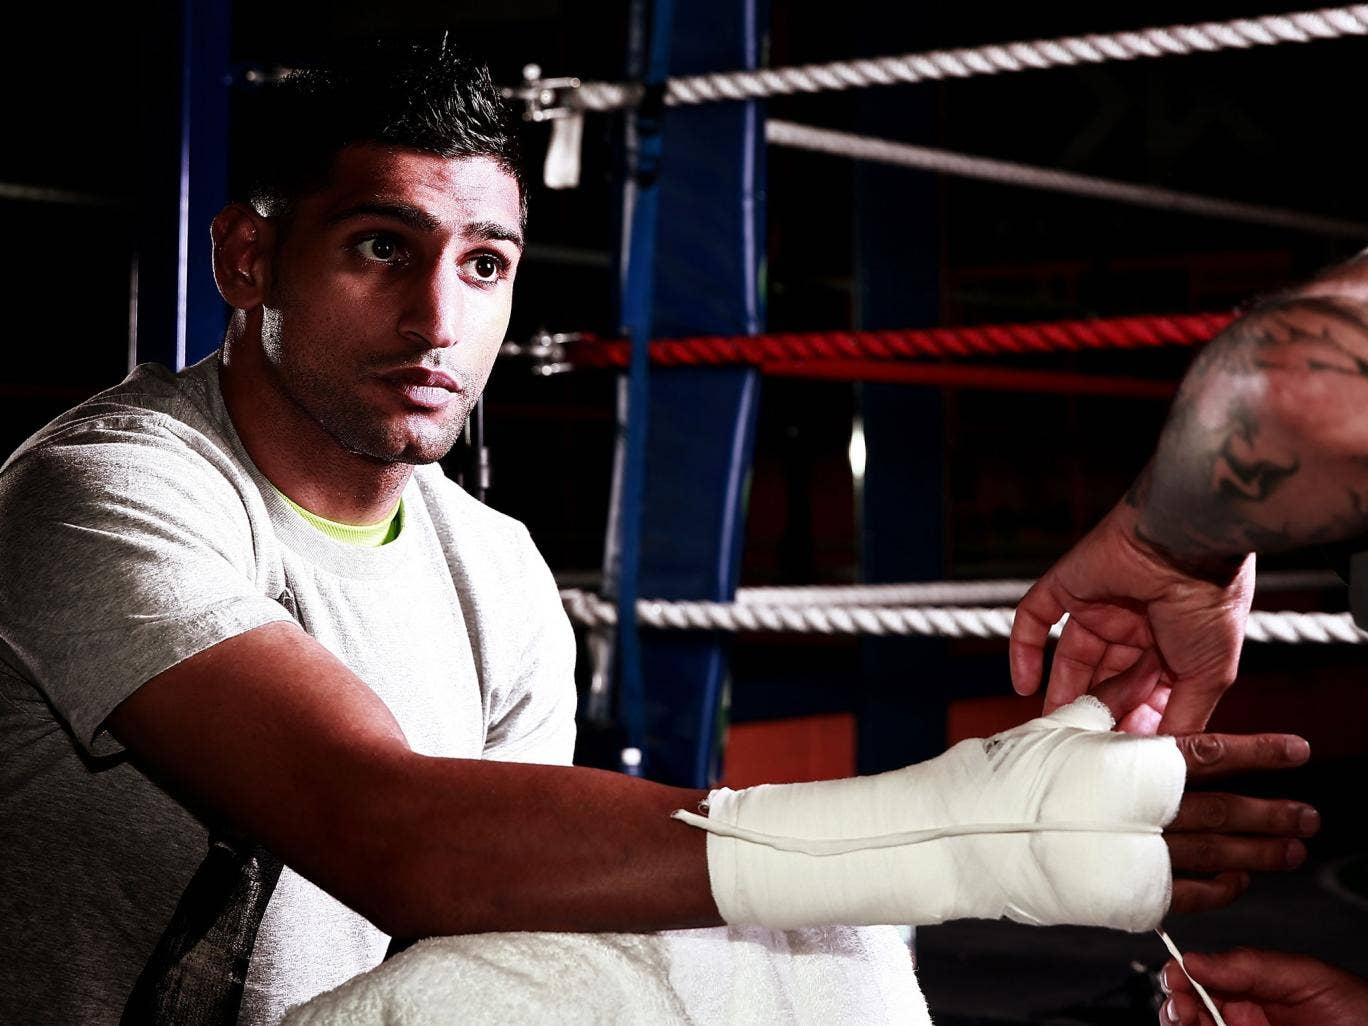 No Khan do: Amir Khan is adamant, stating 'Boxers who take drugs put the lives of others at risk. I am a clean athlete'